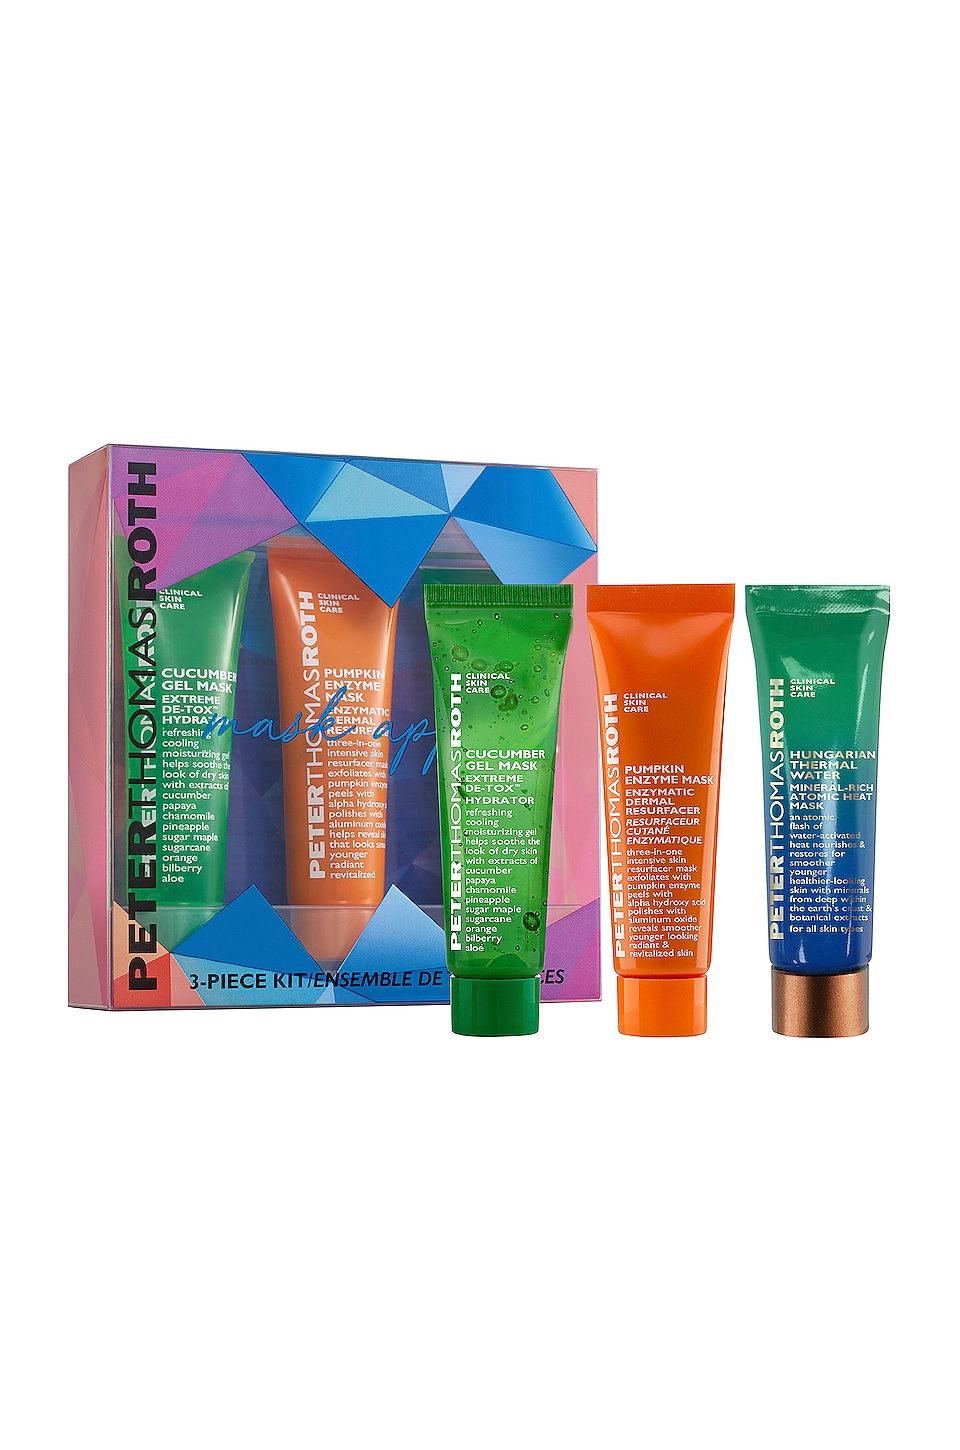 Peter Thomas Roth Mask Appeal 3 Piece Mask Kit